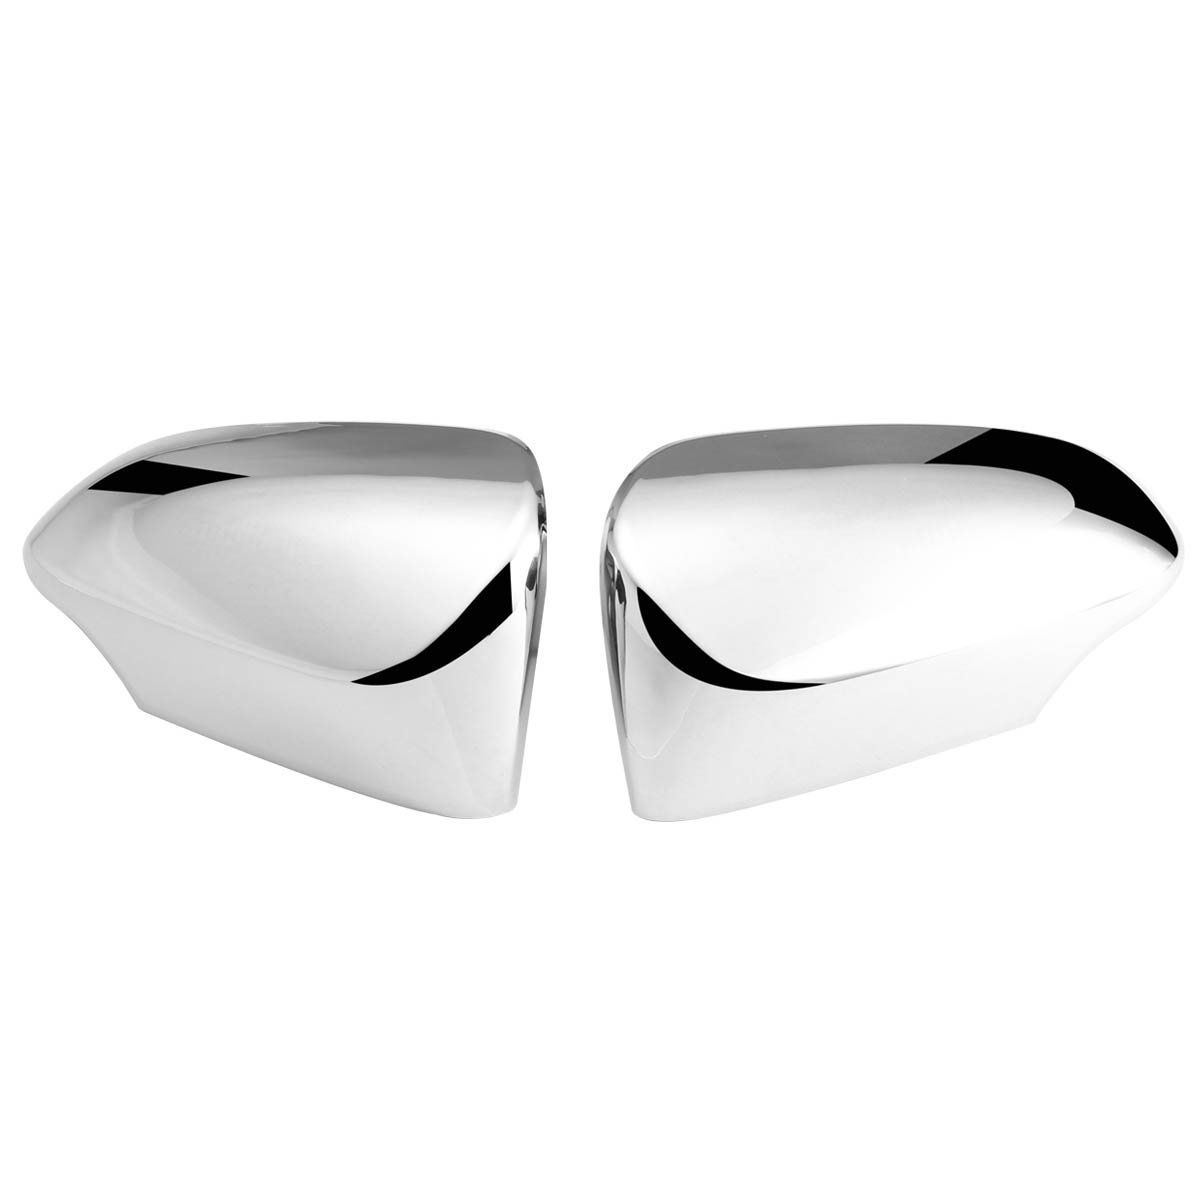 SIDE MIRROR COVERS FOR FORD ECOSPORT (SET OF 2PCS)